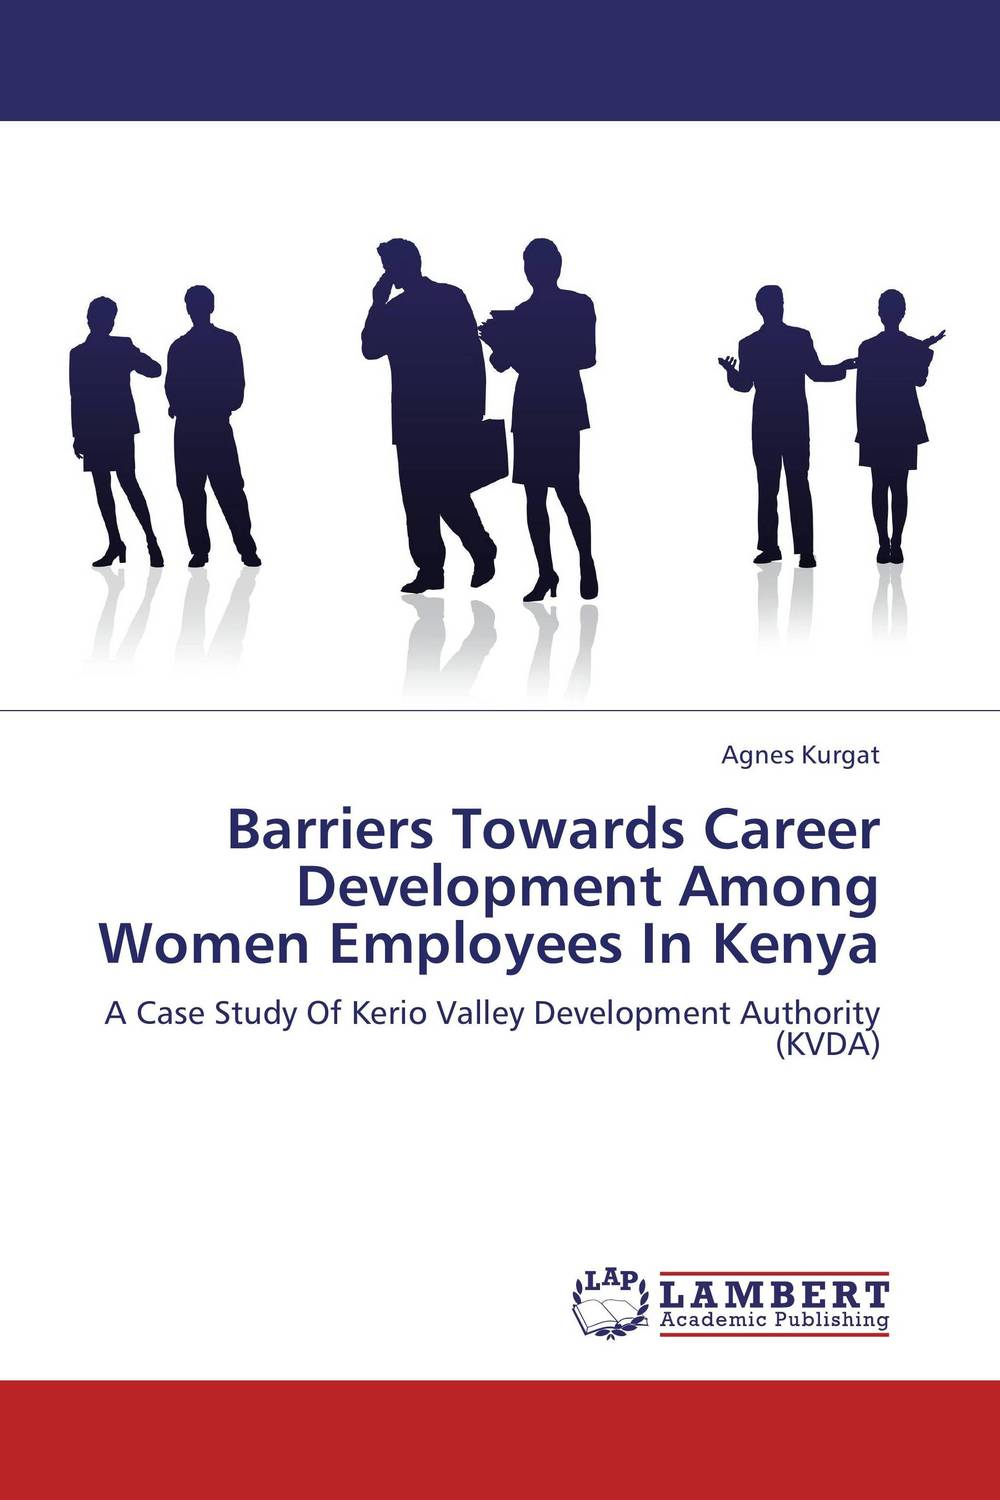 Barriers Towards Career Development Among Women Employees In Kenya dr ripudaman singh mrs arihant kaur bhalla and er indpreet kaur stress among bank employees